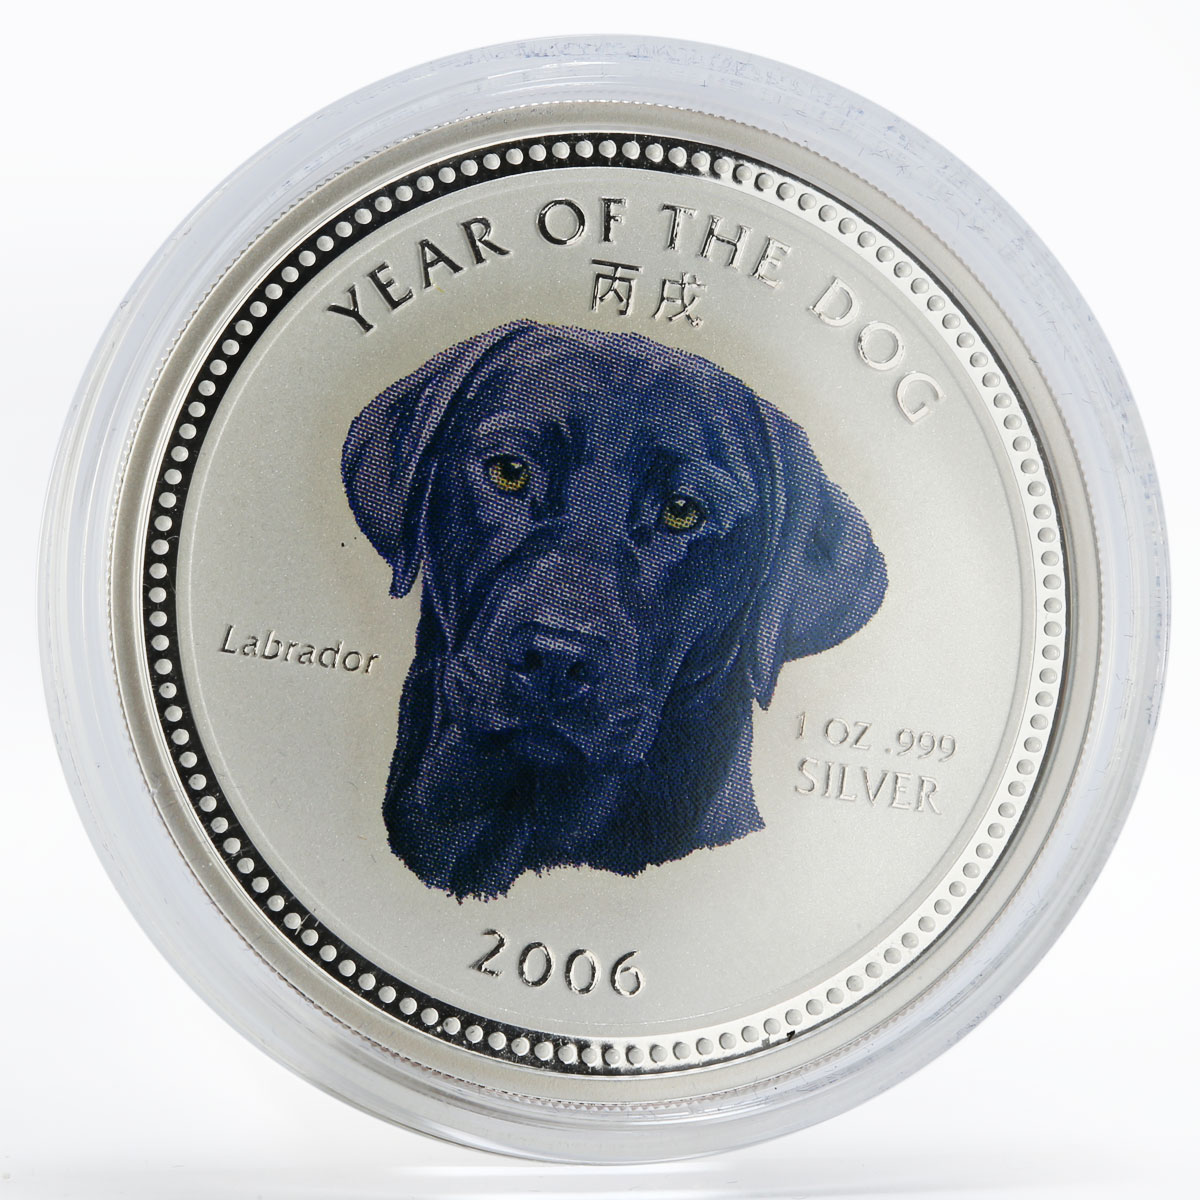 Cambodia 3000 riels Labrador Year of the Dog silver color coin 2006